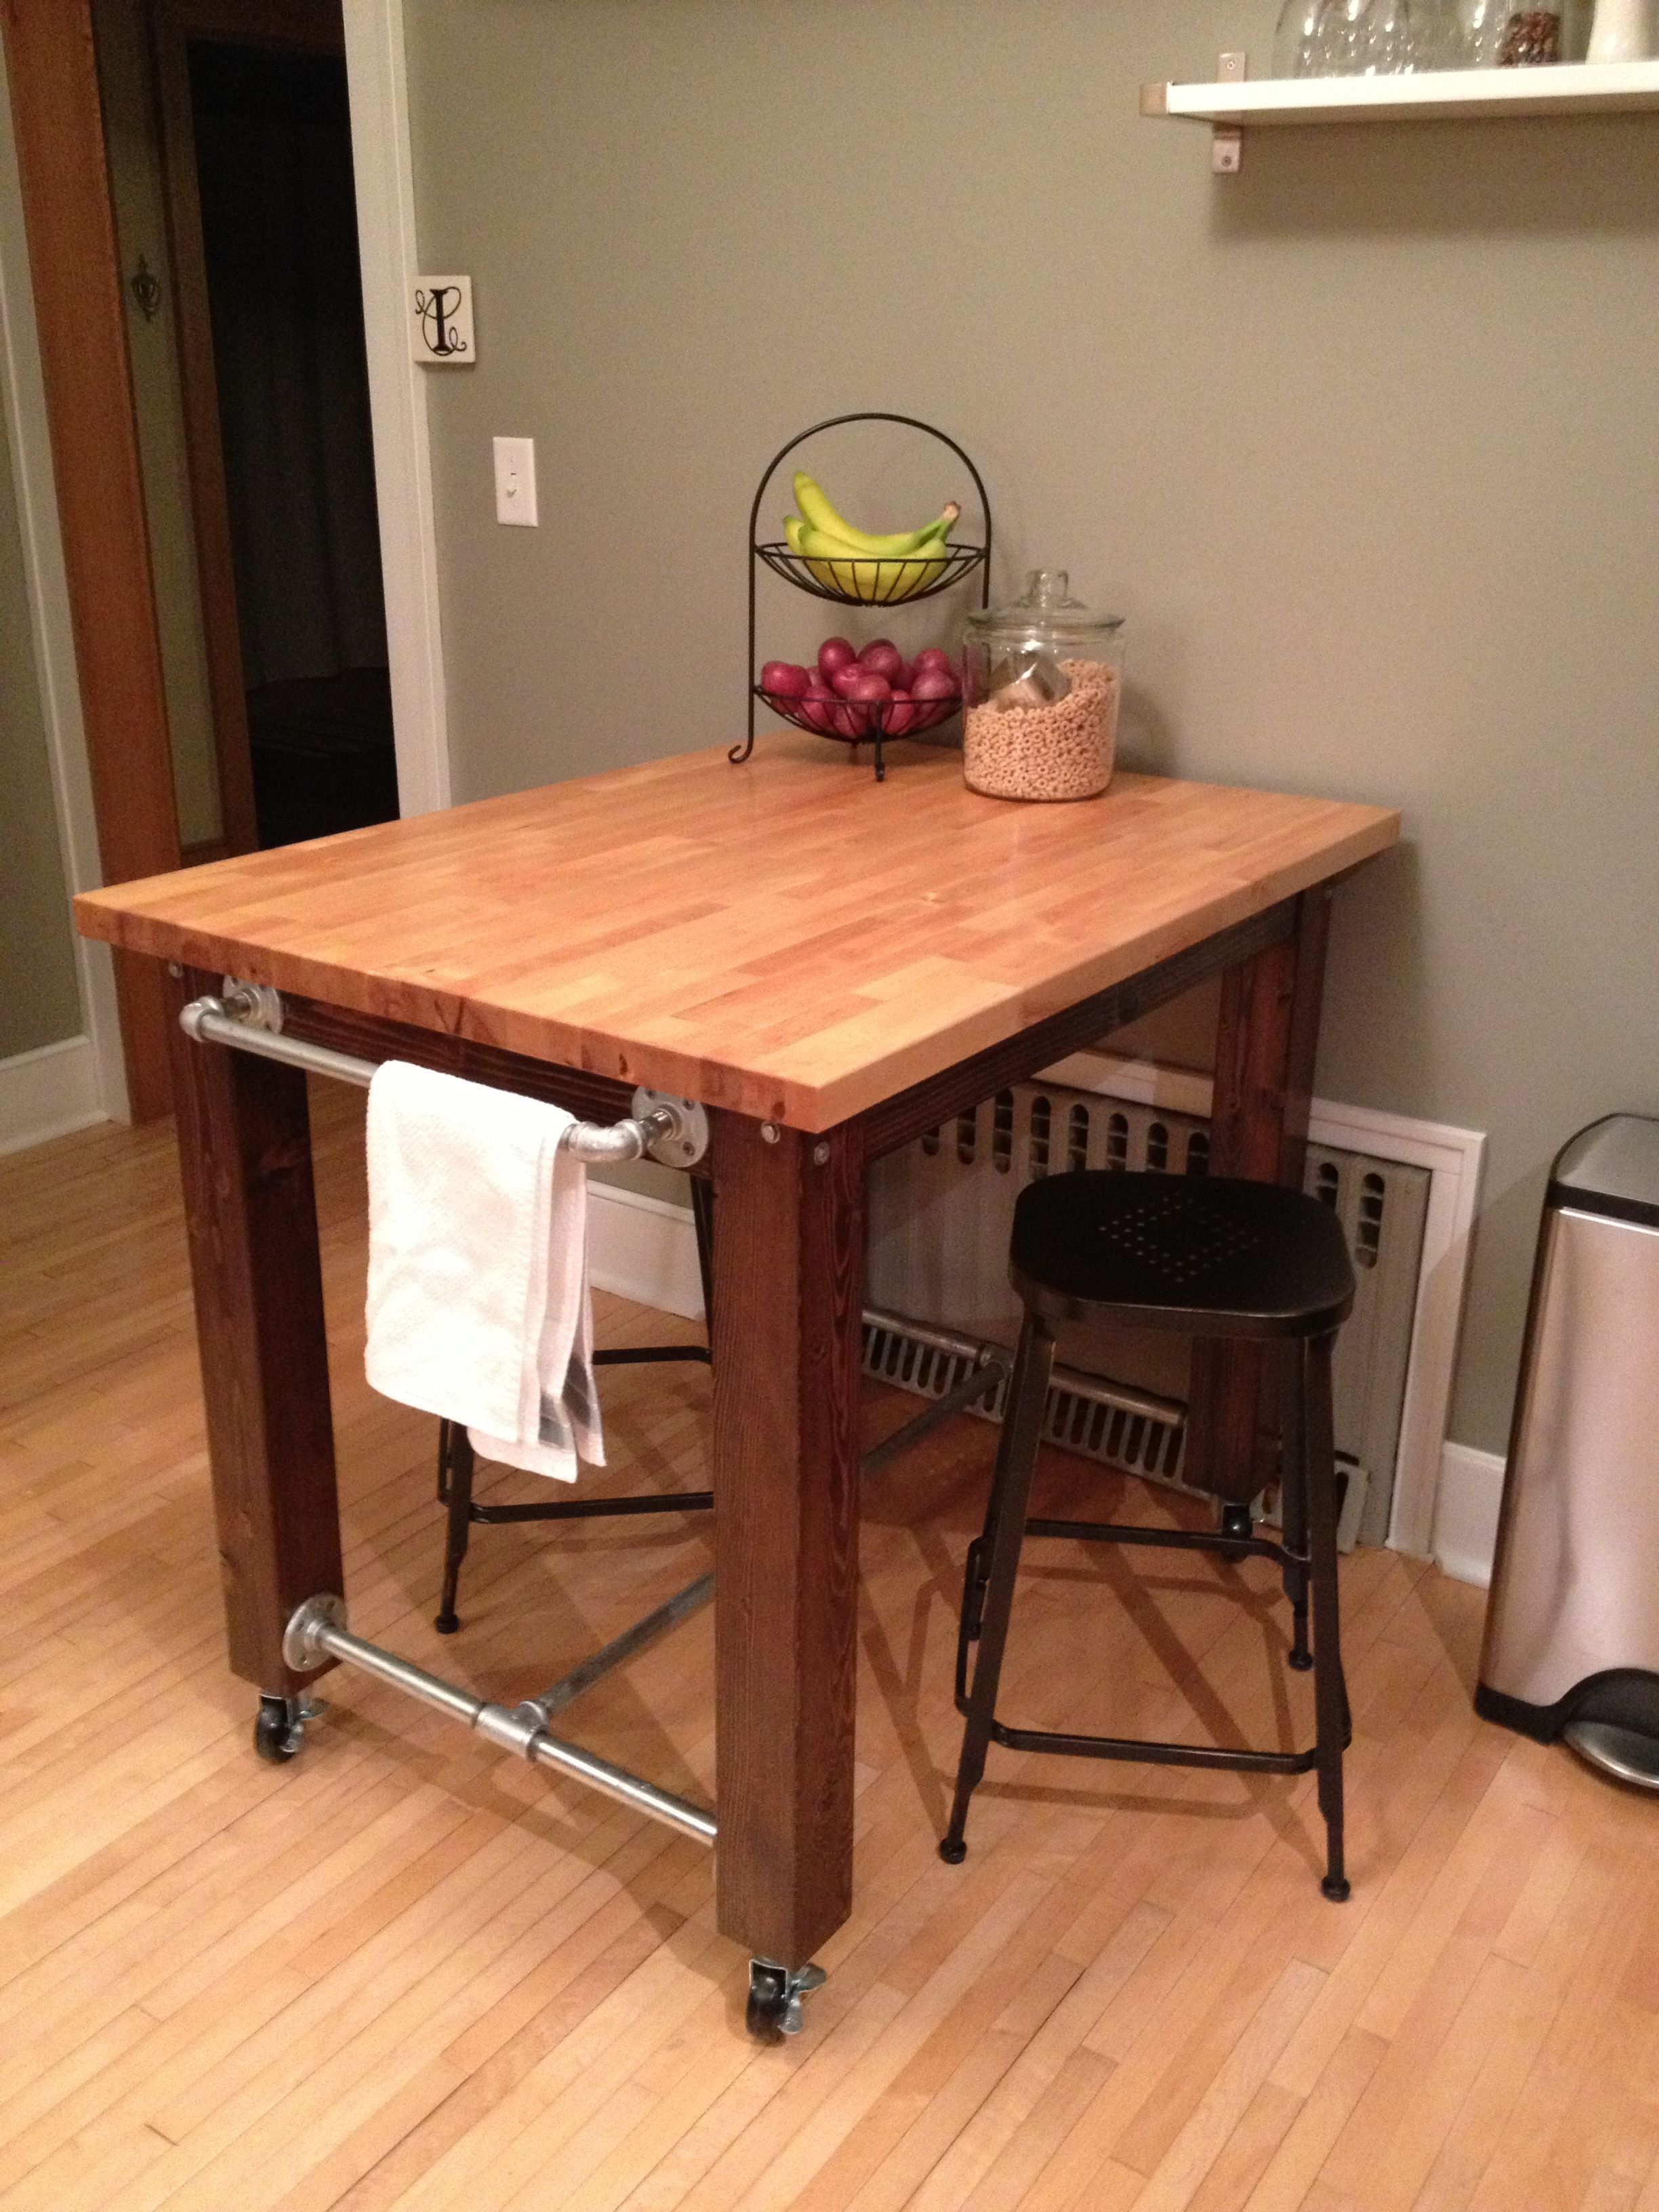 Where Can I Buy A Kitchen Table Island Cart We Built From Scratch 4x4s Little Stain